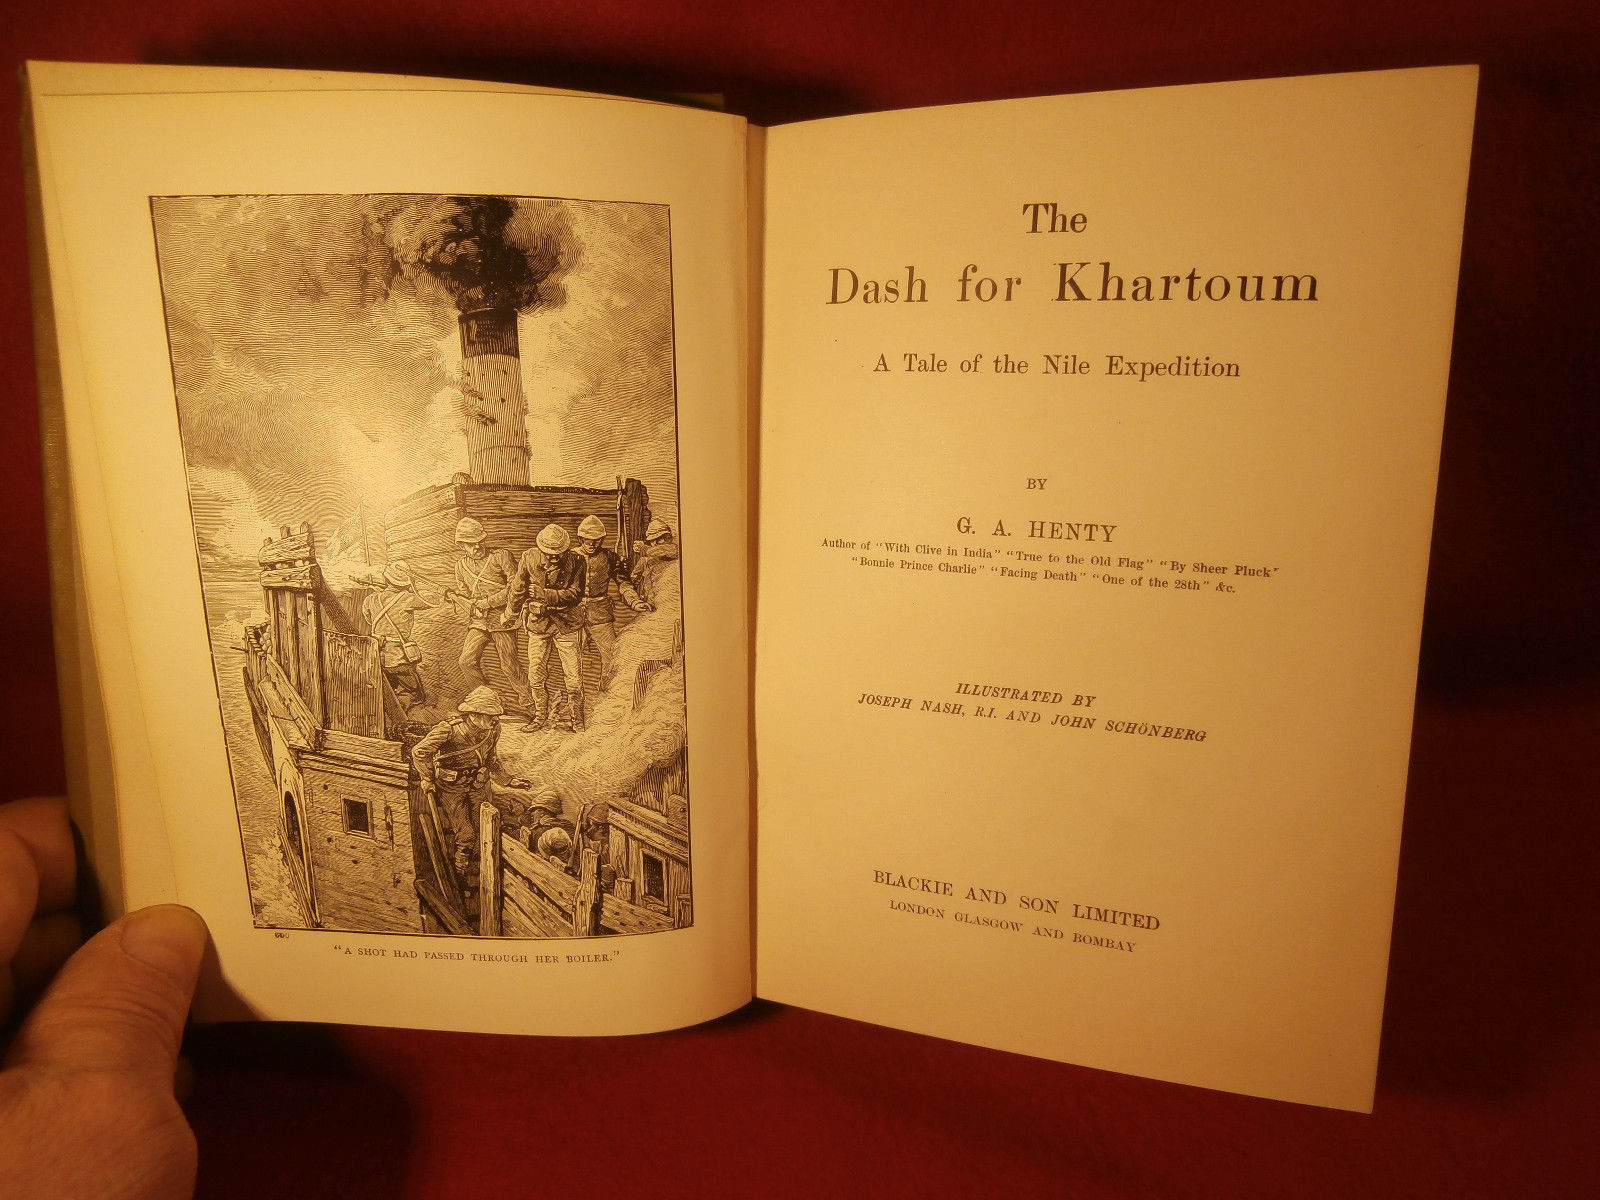 The Dash for Khartoum by G A Henty Prntd London Illst by J Nash and J Schonberg